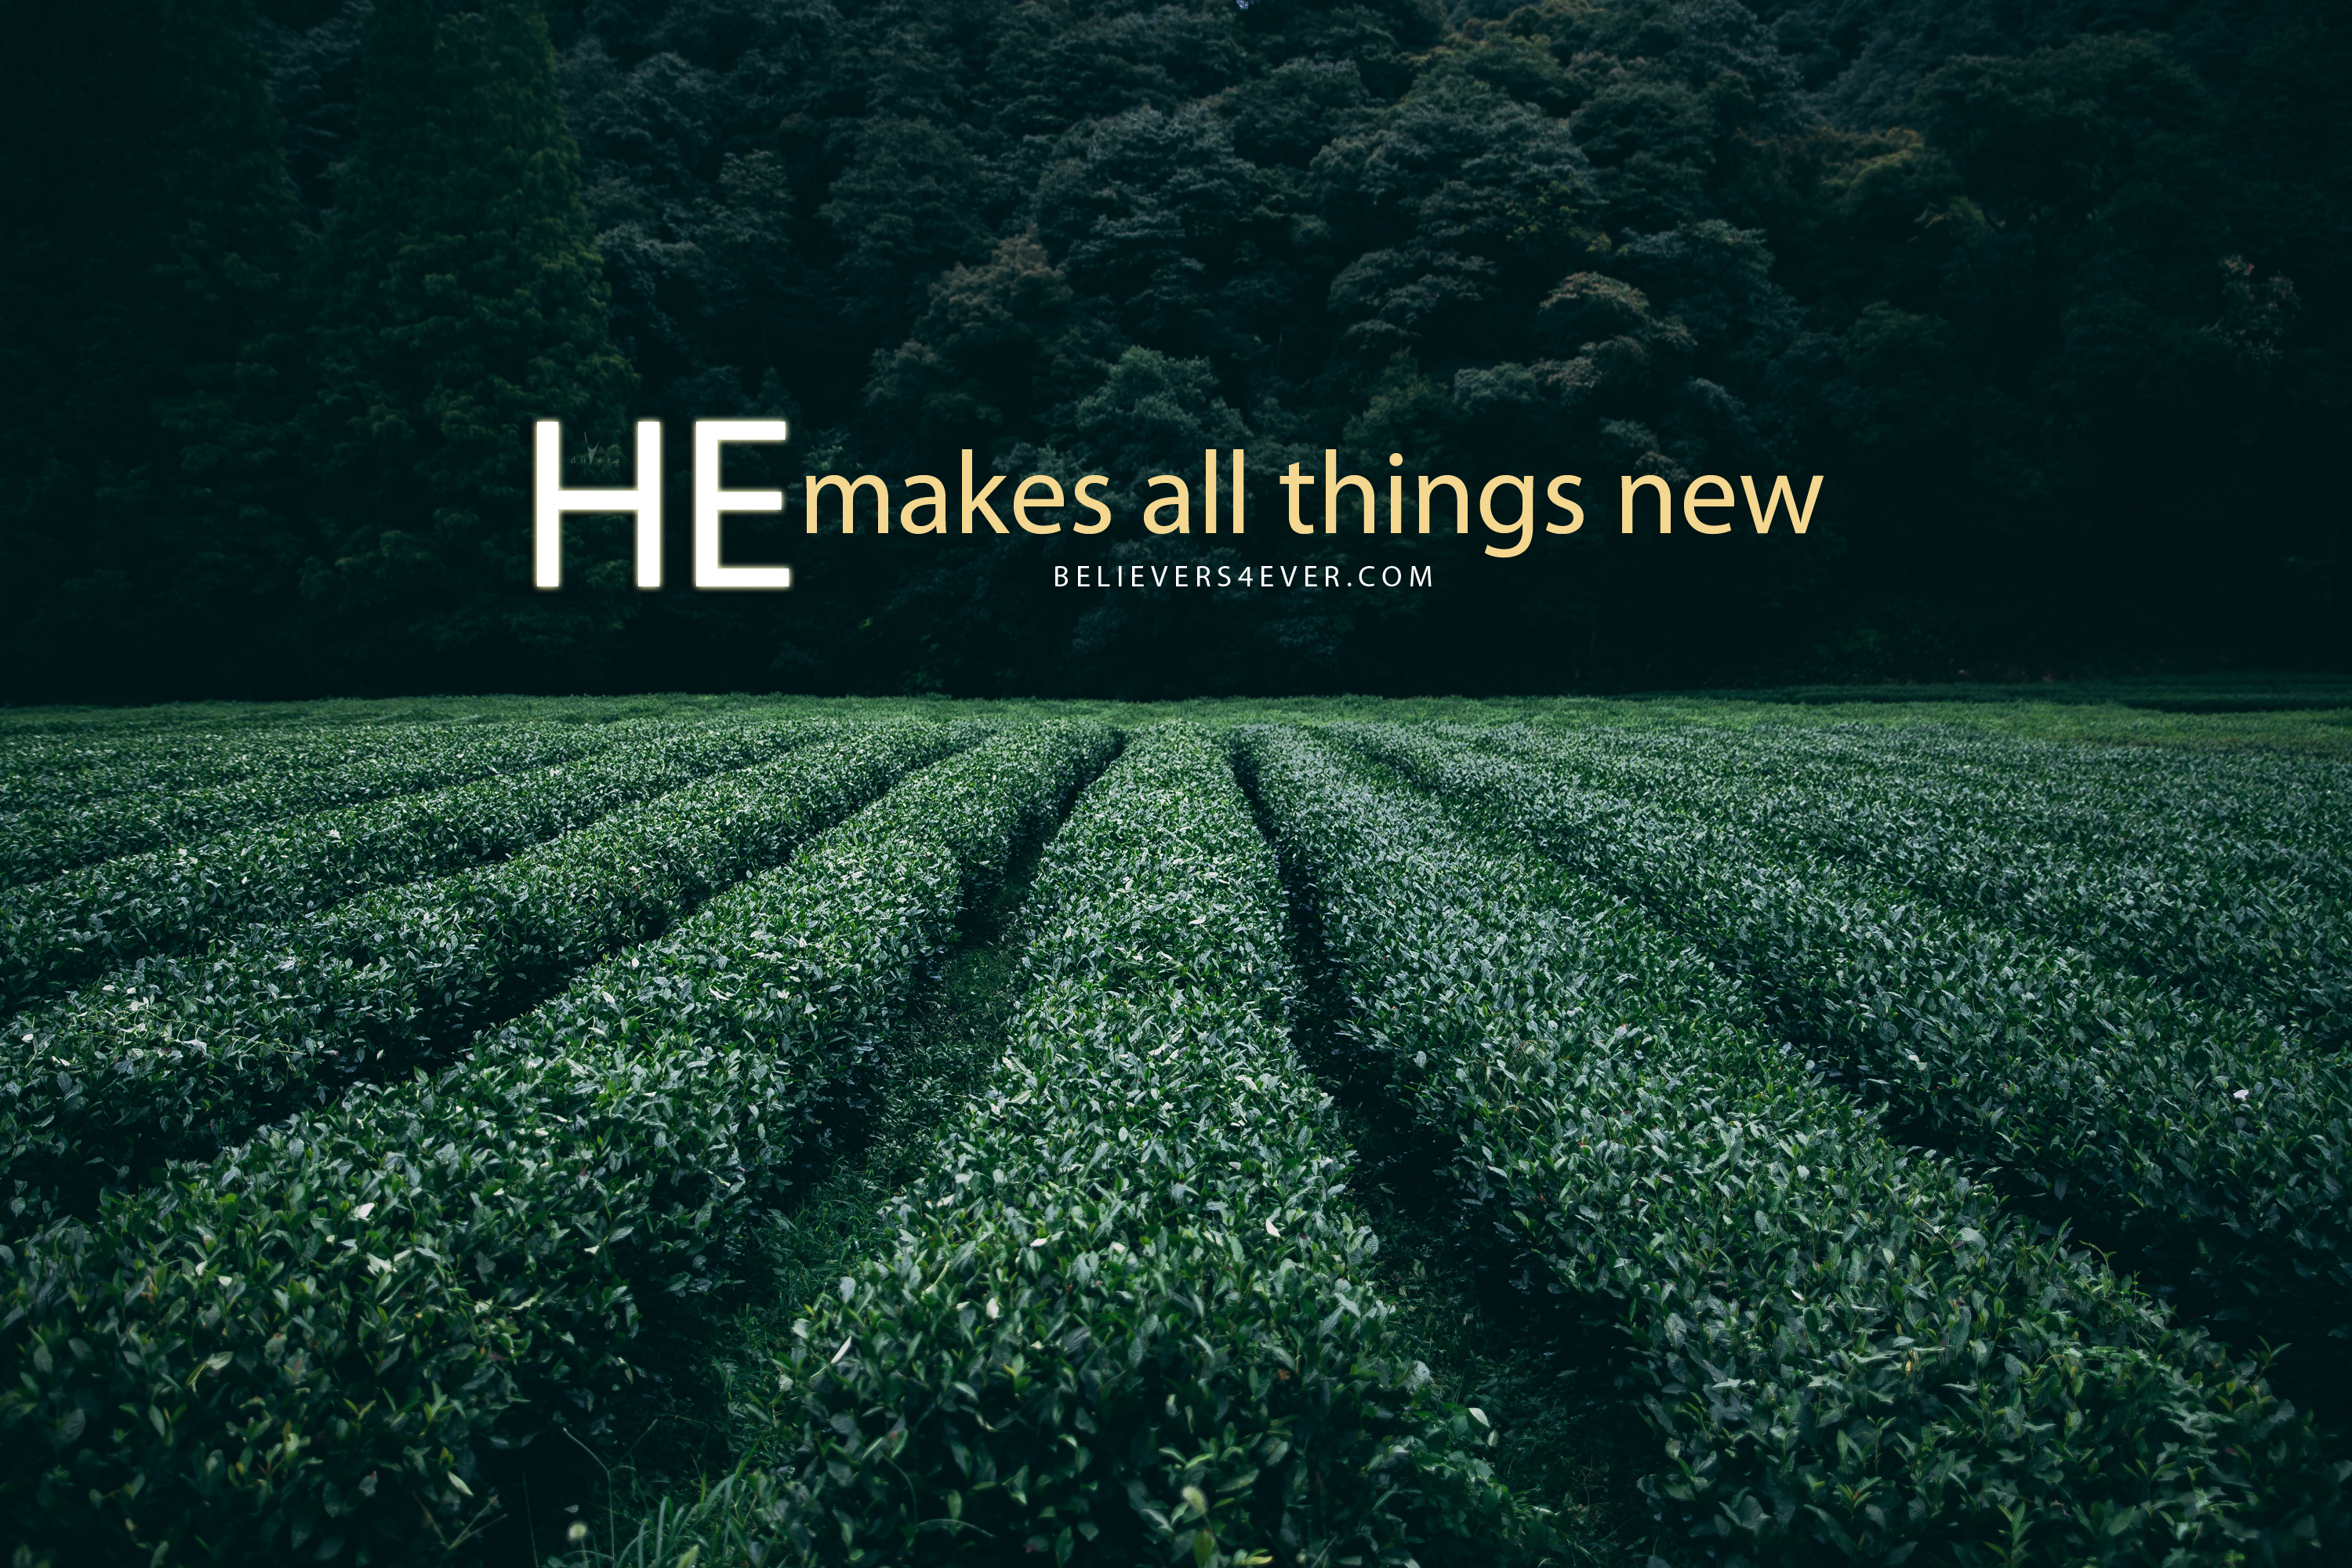 he-makes-all-things-new-wallpaper